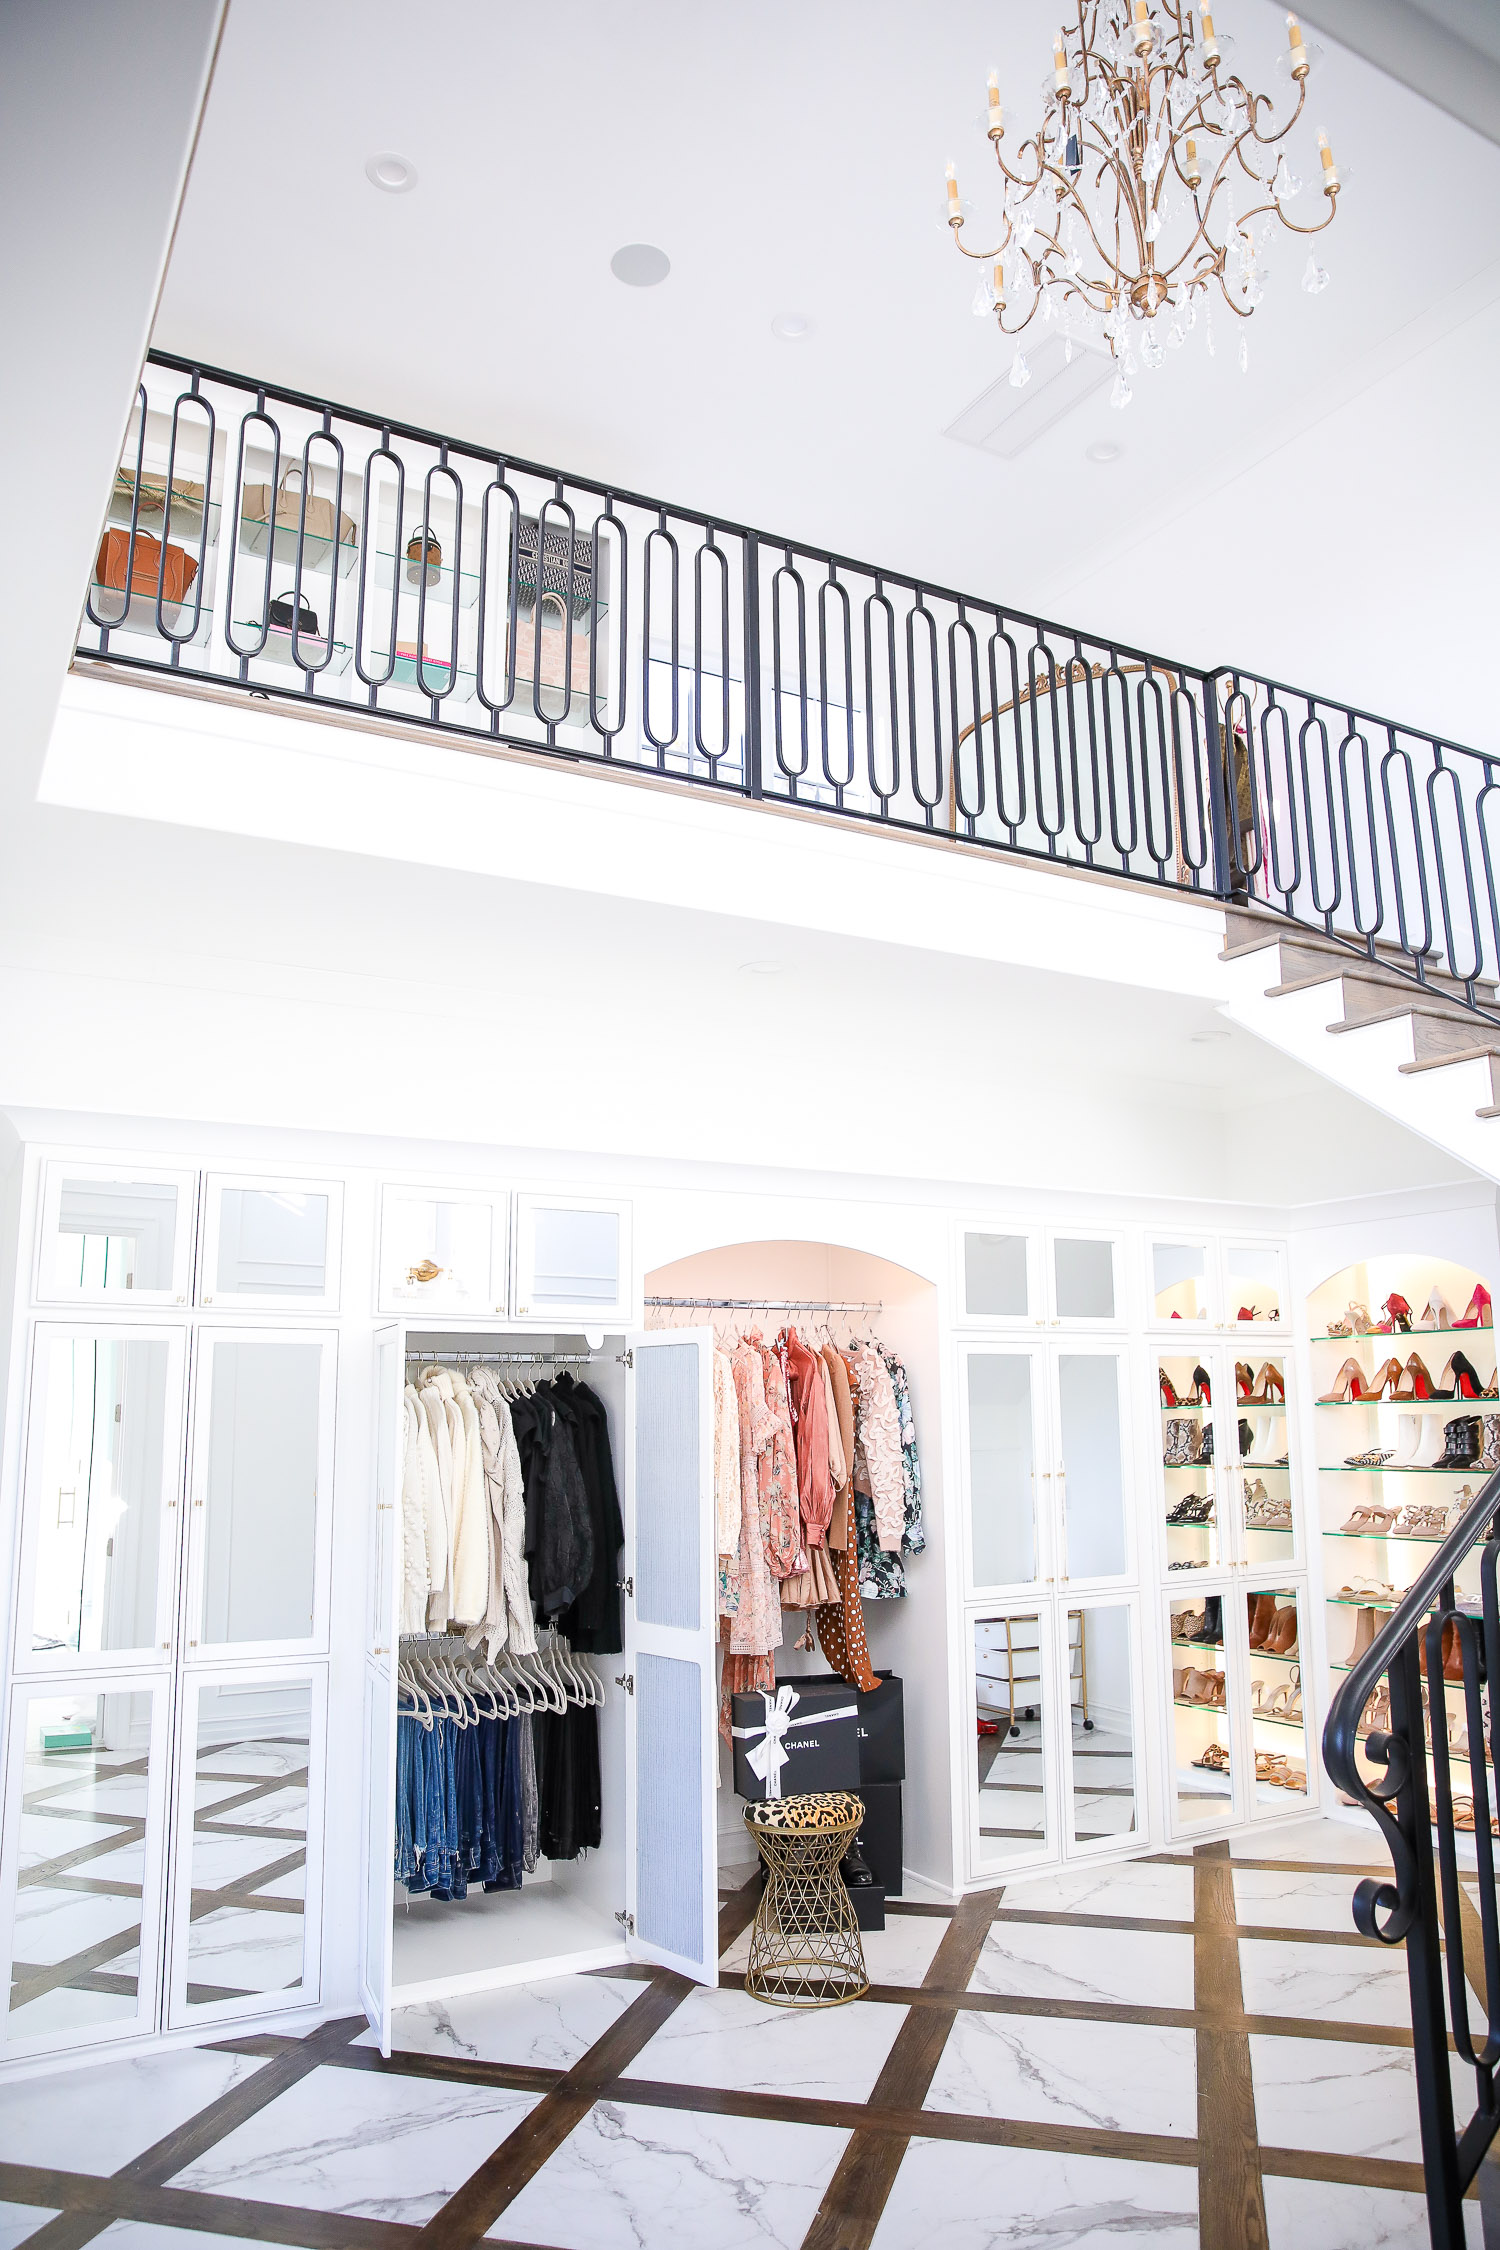 two story closet, designer high end two story closet, Pinterest two story closet, Emily Gemma closet, Pinterest home inspiration | Amazon Prime Favorites by popular US life and style blog, The Sweetest Thing: image of a two story closet.